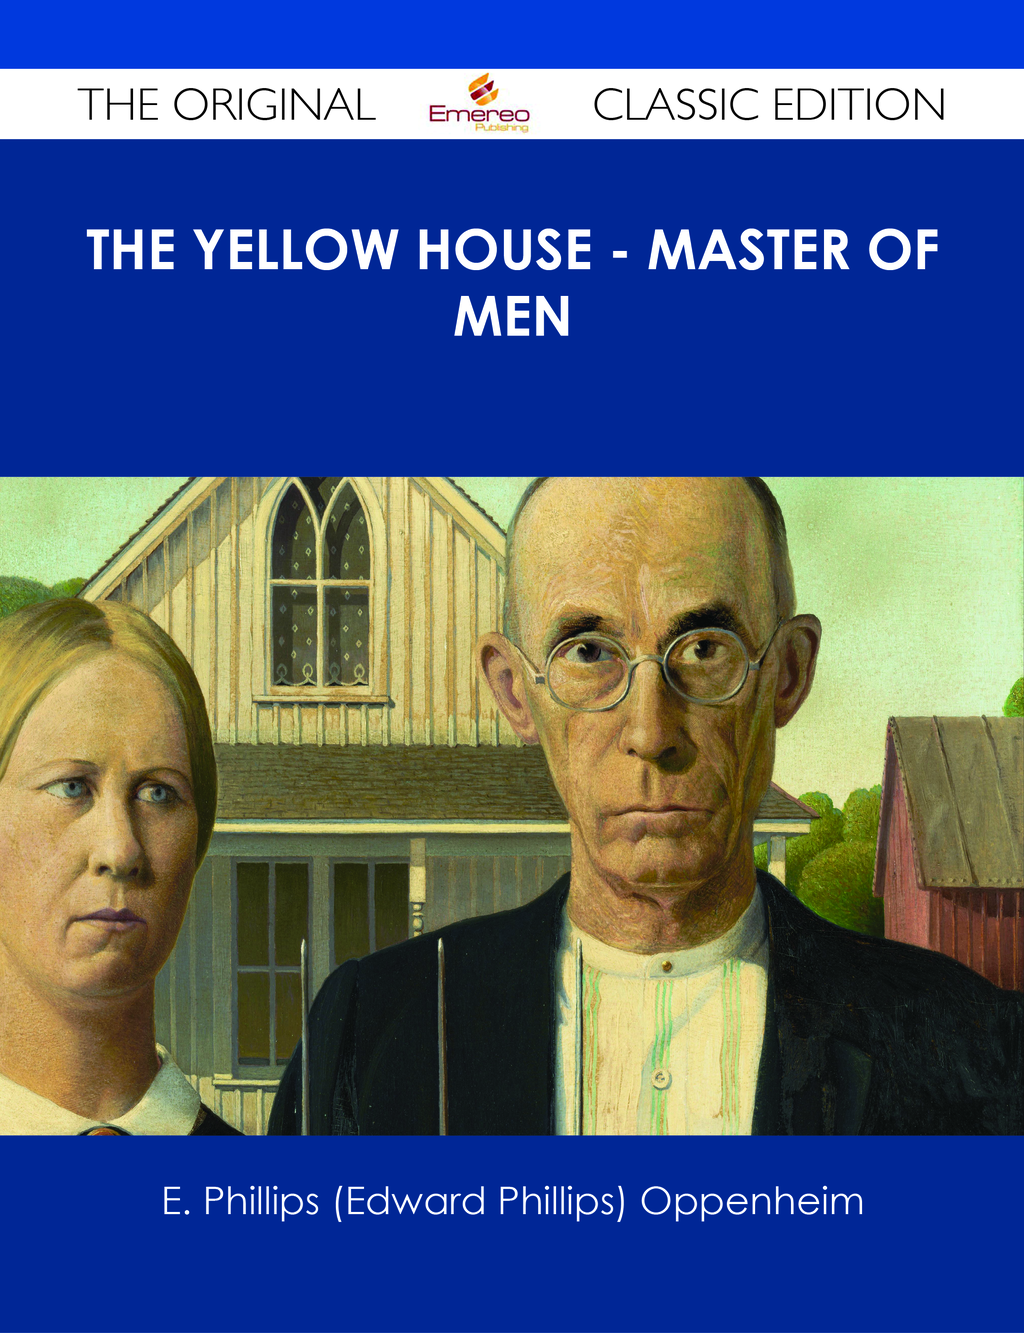 The Yellow House - Master of Men - The Original Classic Edition